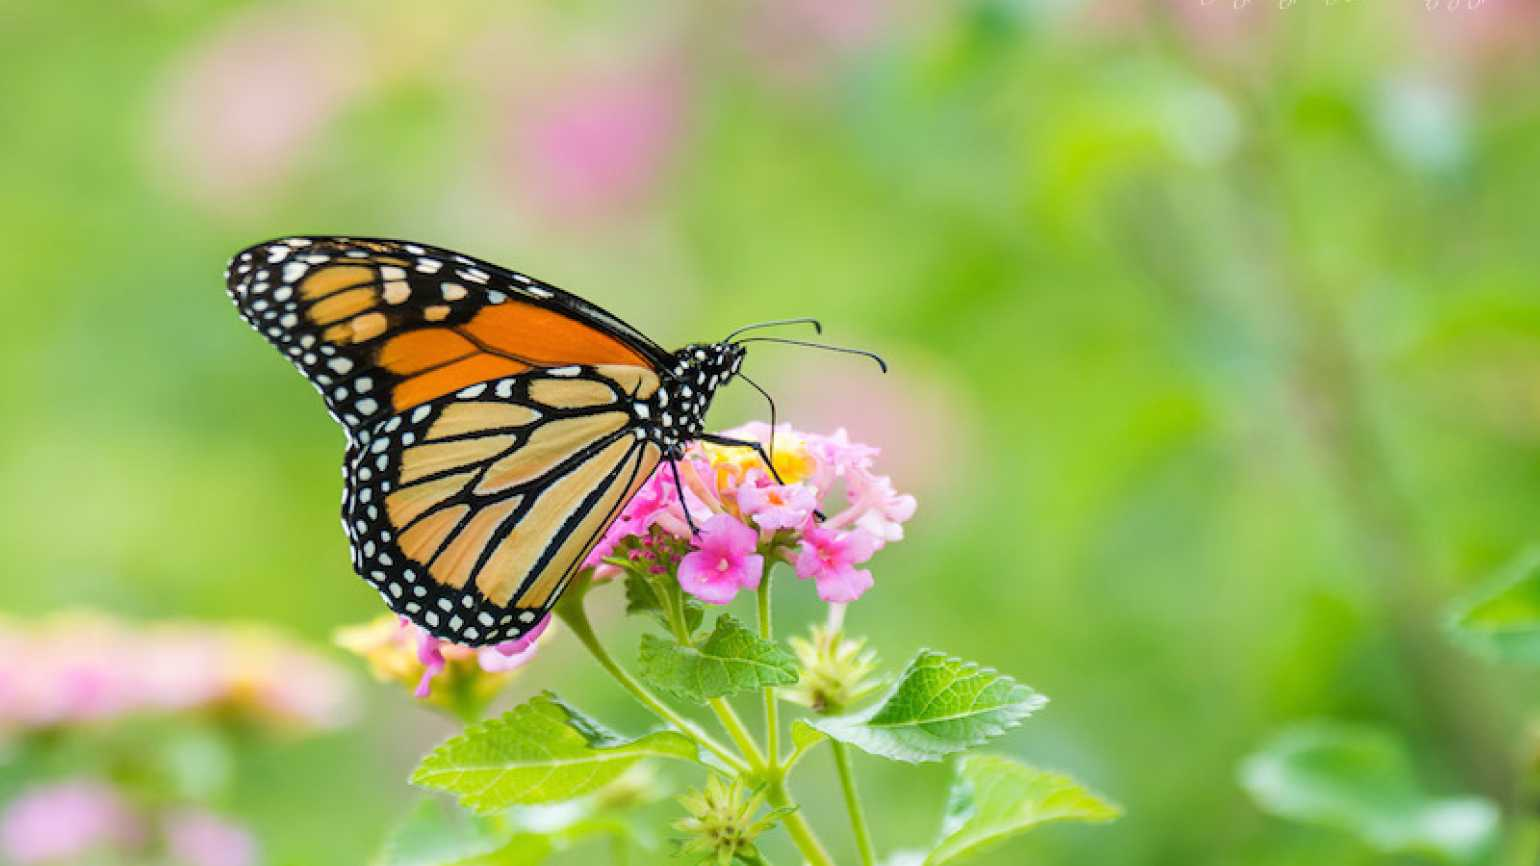 The miraculous Monarch butterfly. Photo by Judy Royal Glenn.